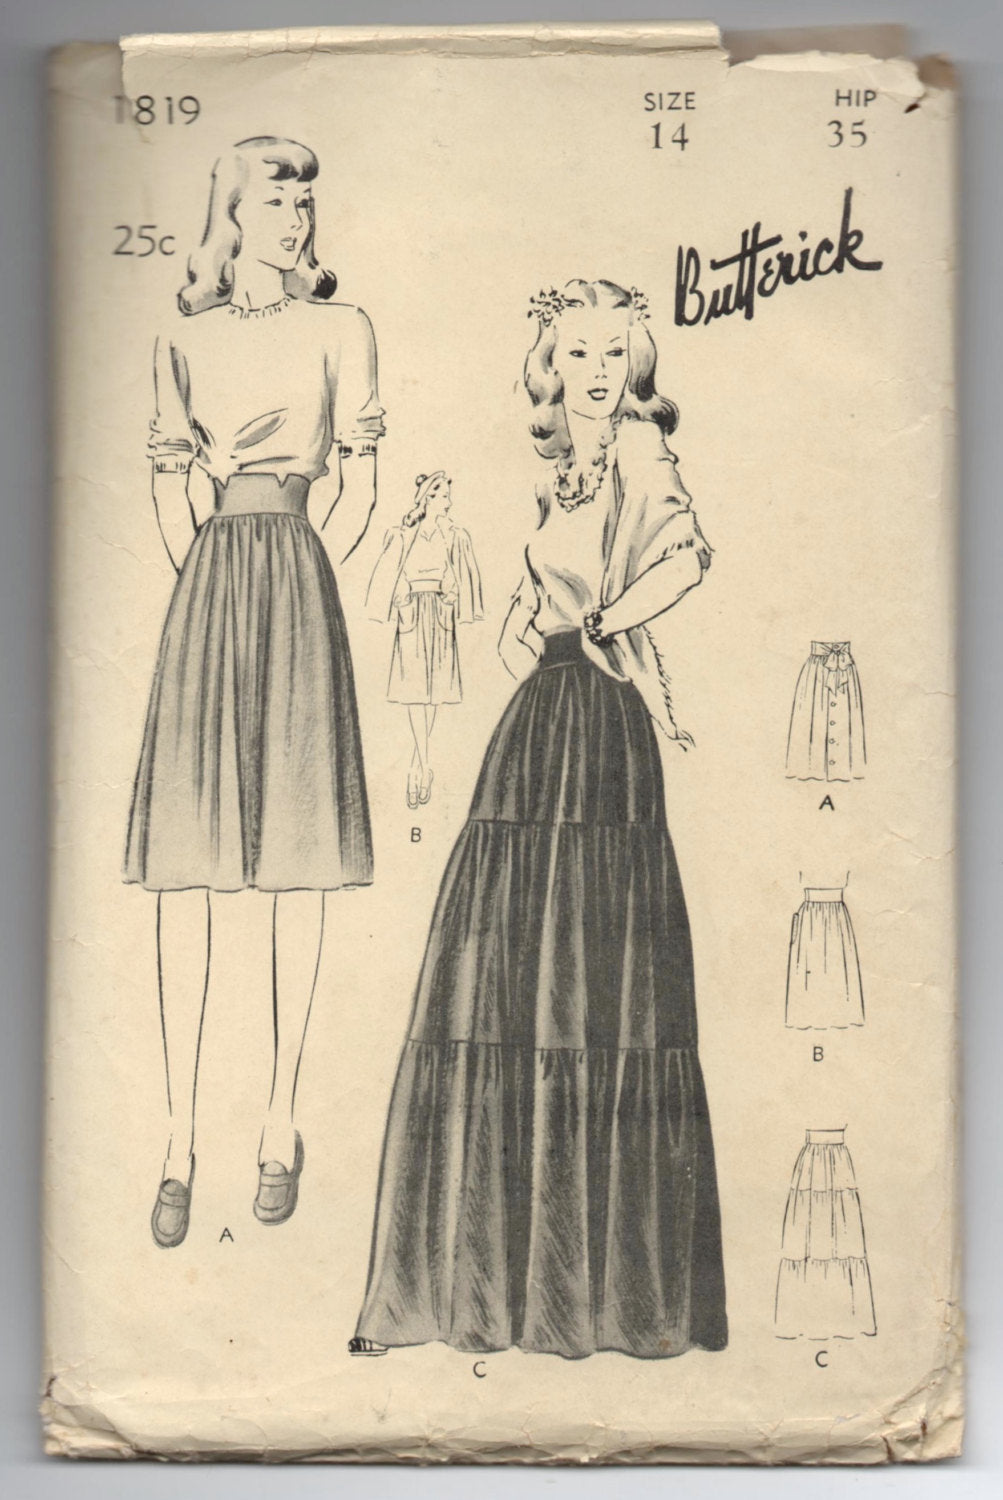 1940's Butterick Full Length Tiered, Dirndl, and Knee Length with Pockets Skirts Pattern - Hip 35